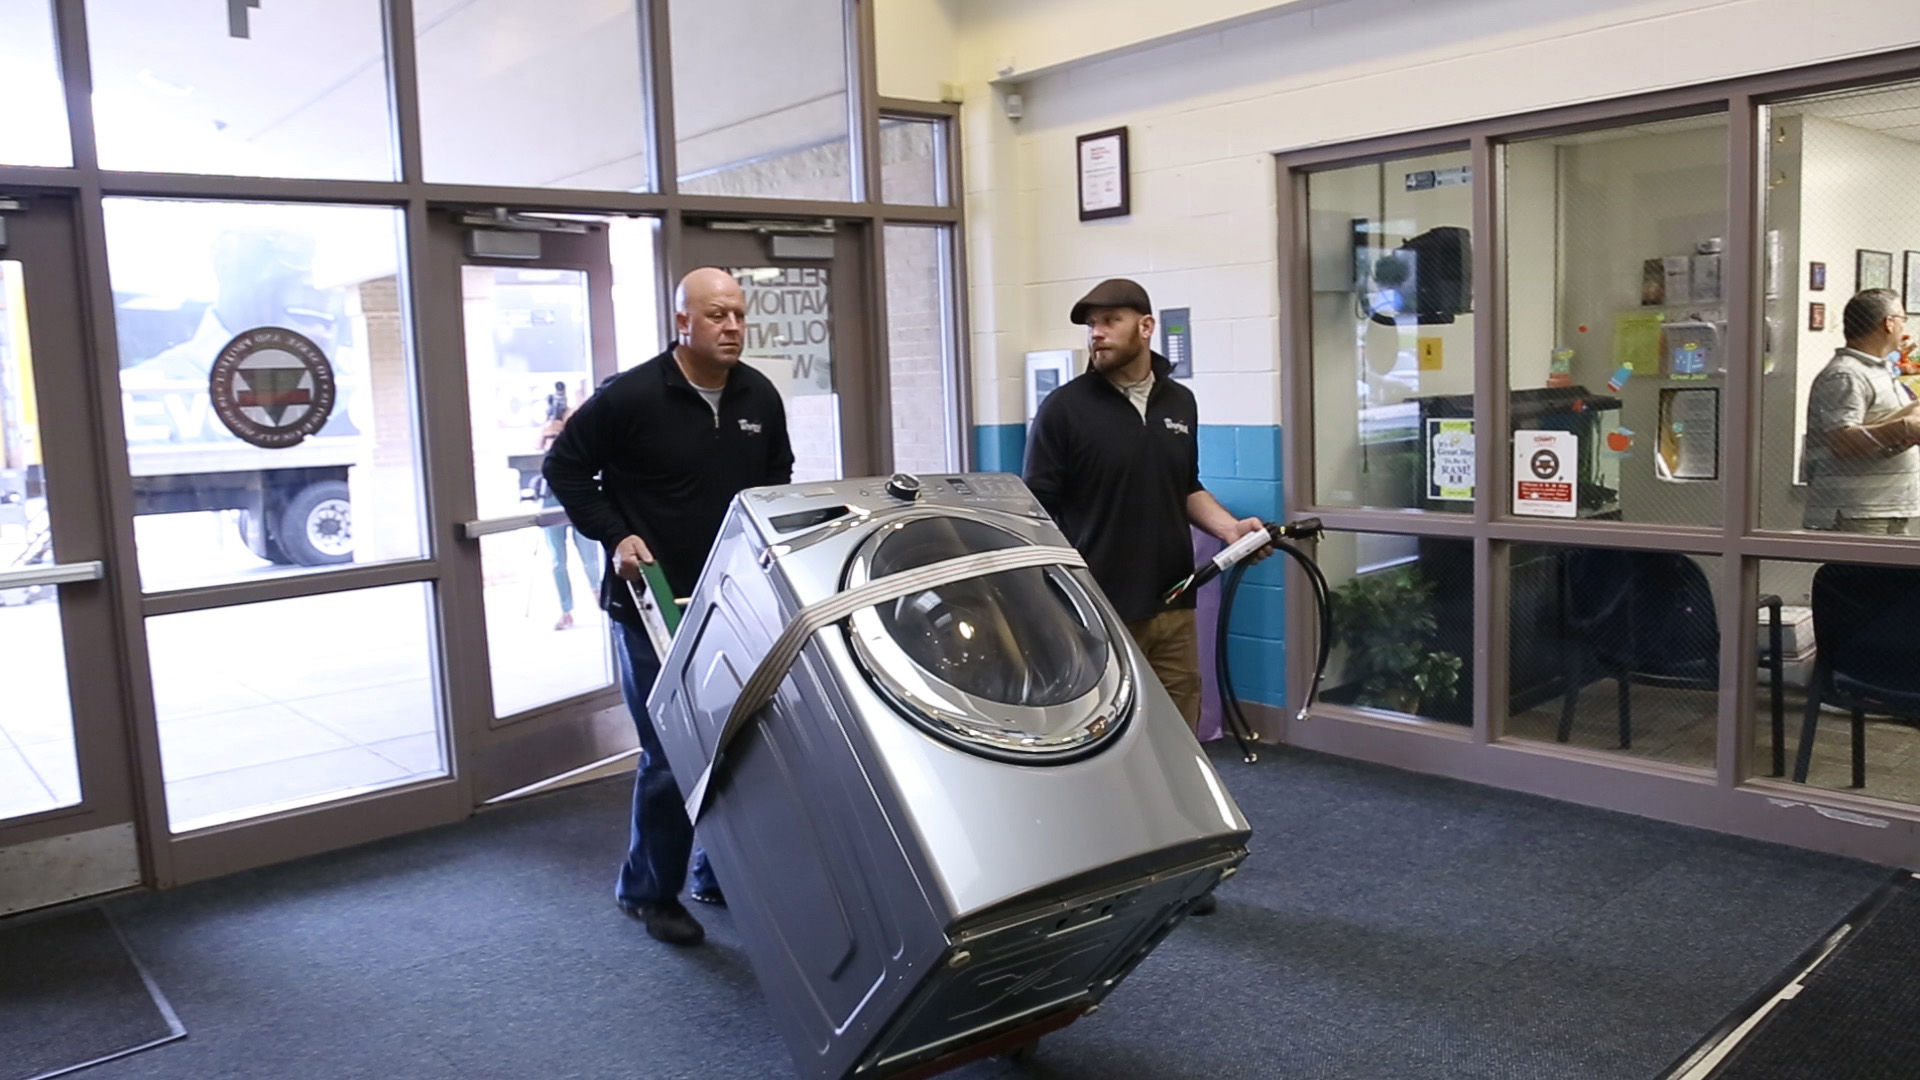 Whirlpool is partnering with schools to provide students with better access to clean clothes